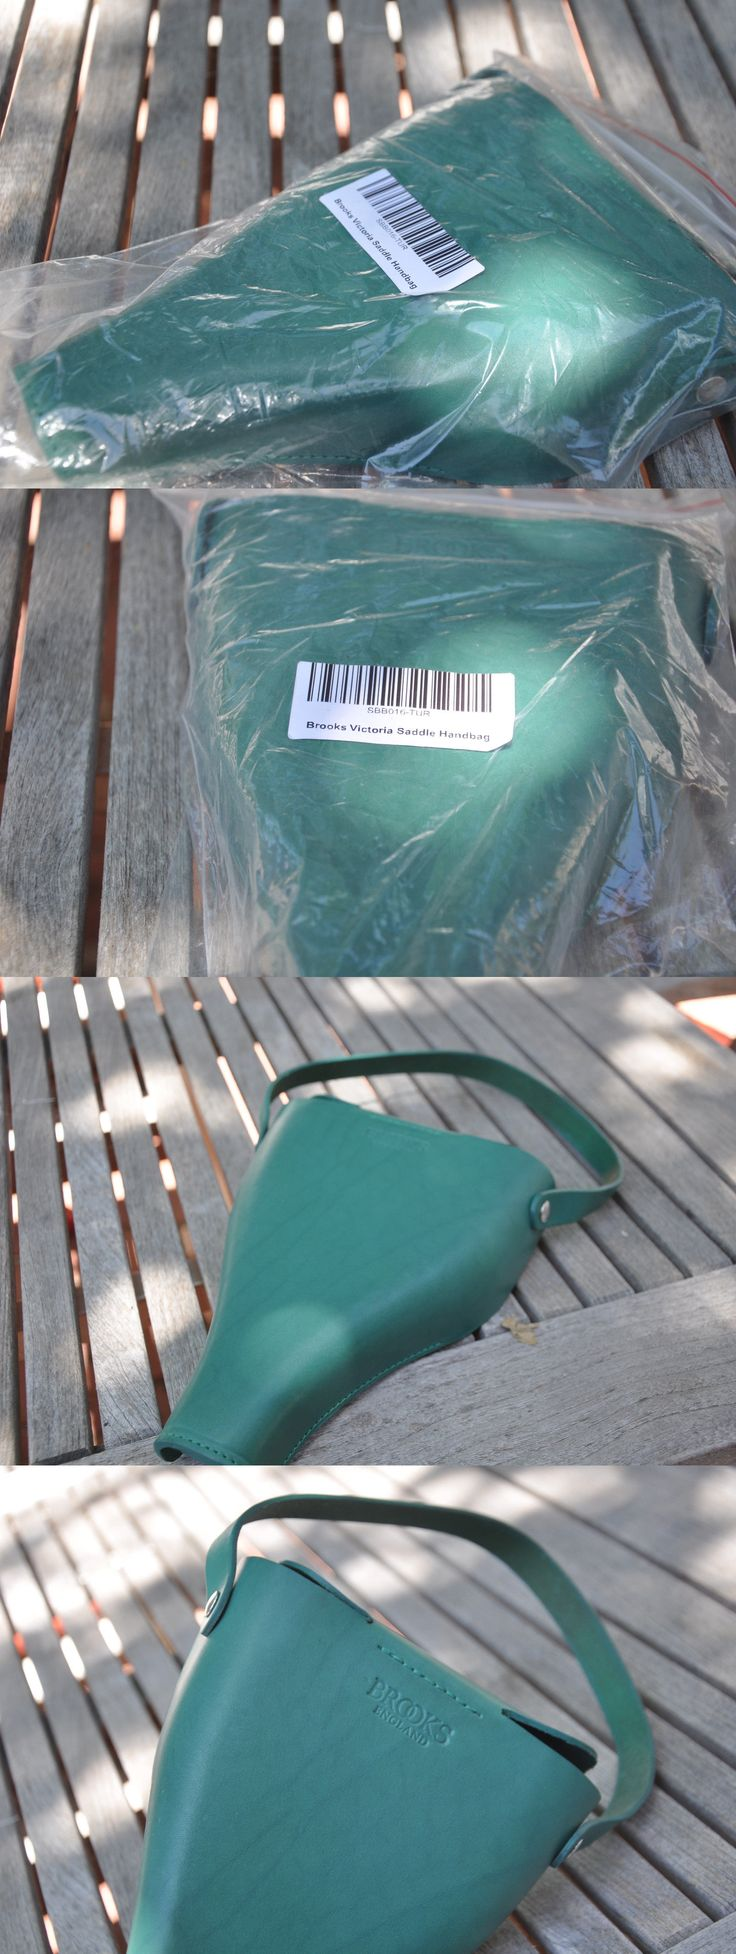 Saddle Covers Seat Covers 177838: Brooks Victoria Saddle Bag Handbag Purse Turquoise -> BUY IT NOW ONLY: $30 on eBay!